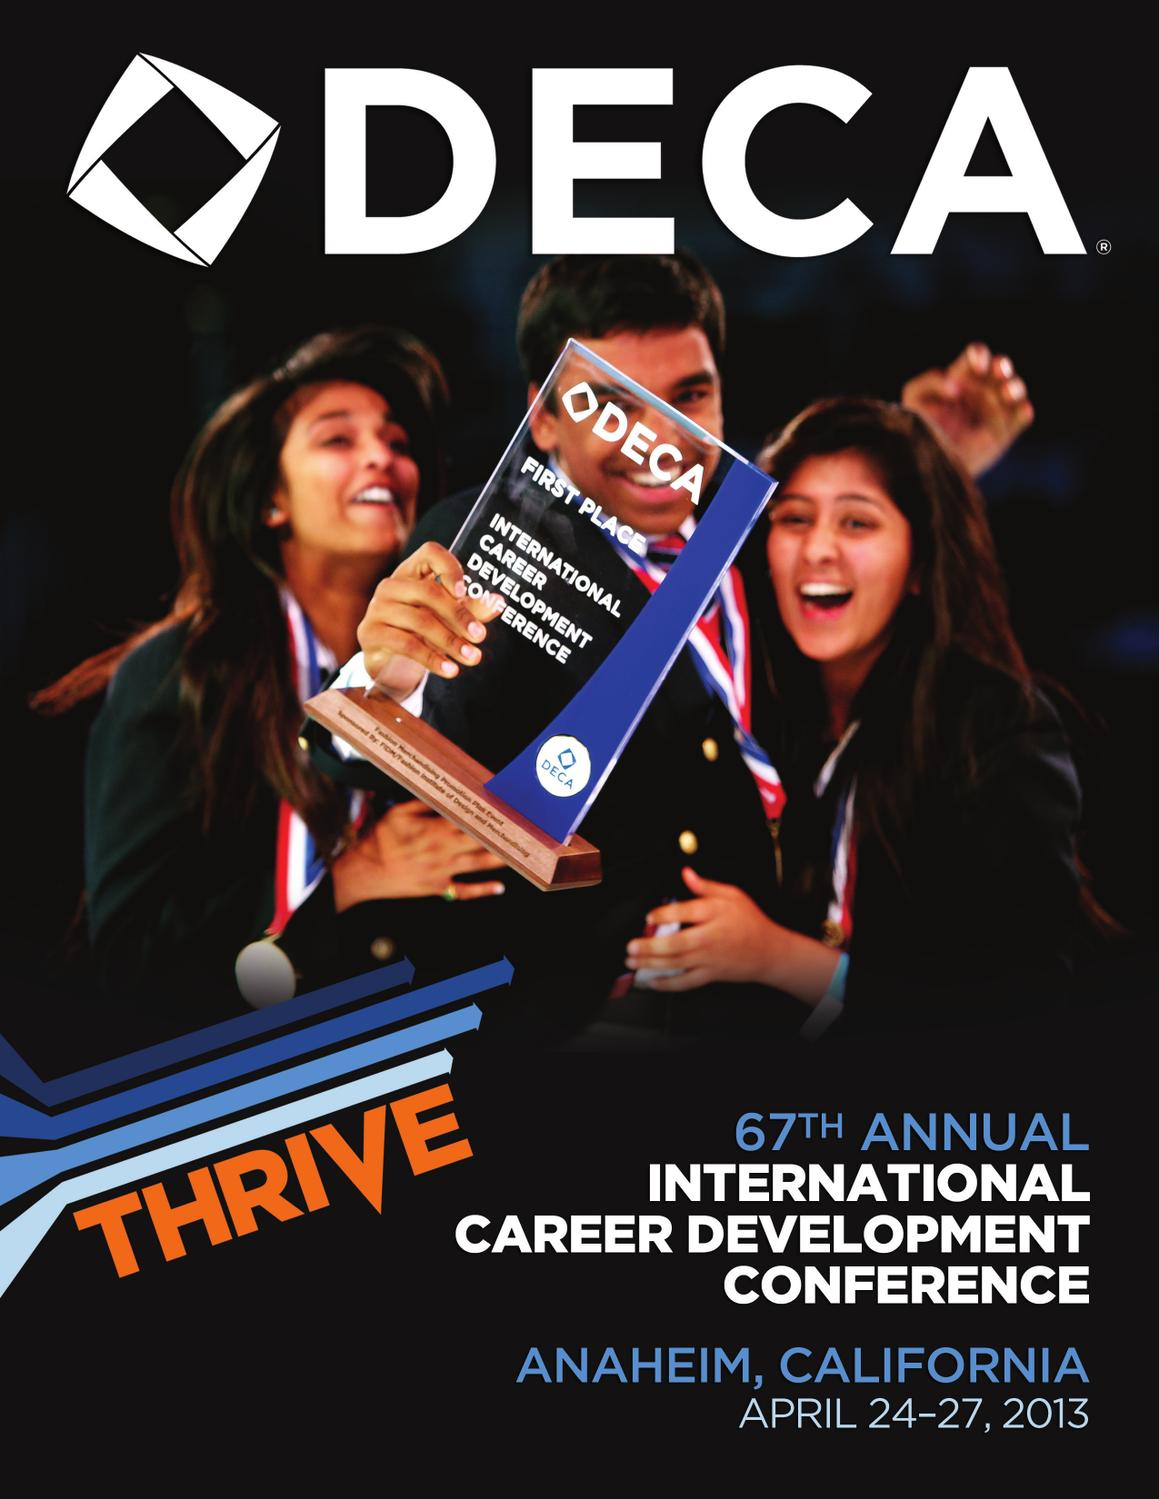 Deca 2013 international career development conference Associates degree in fashion design online